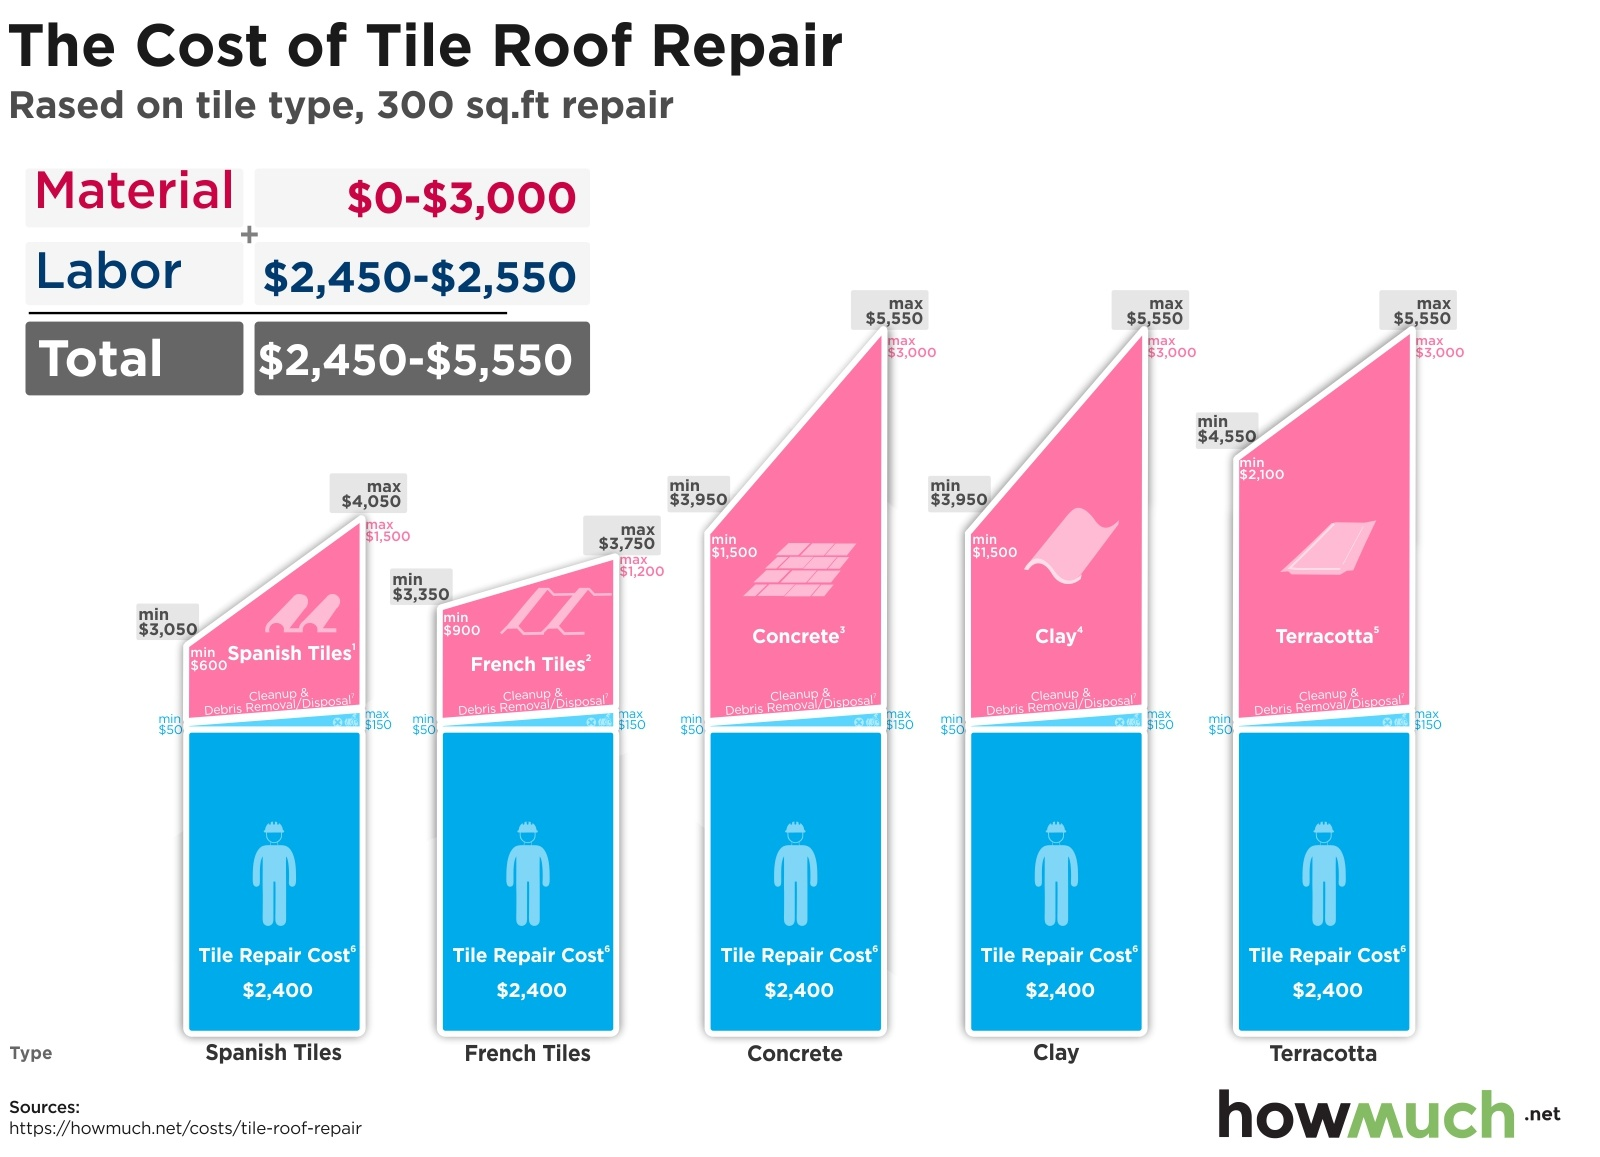 The Cost of Tile Roof Repair